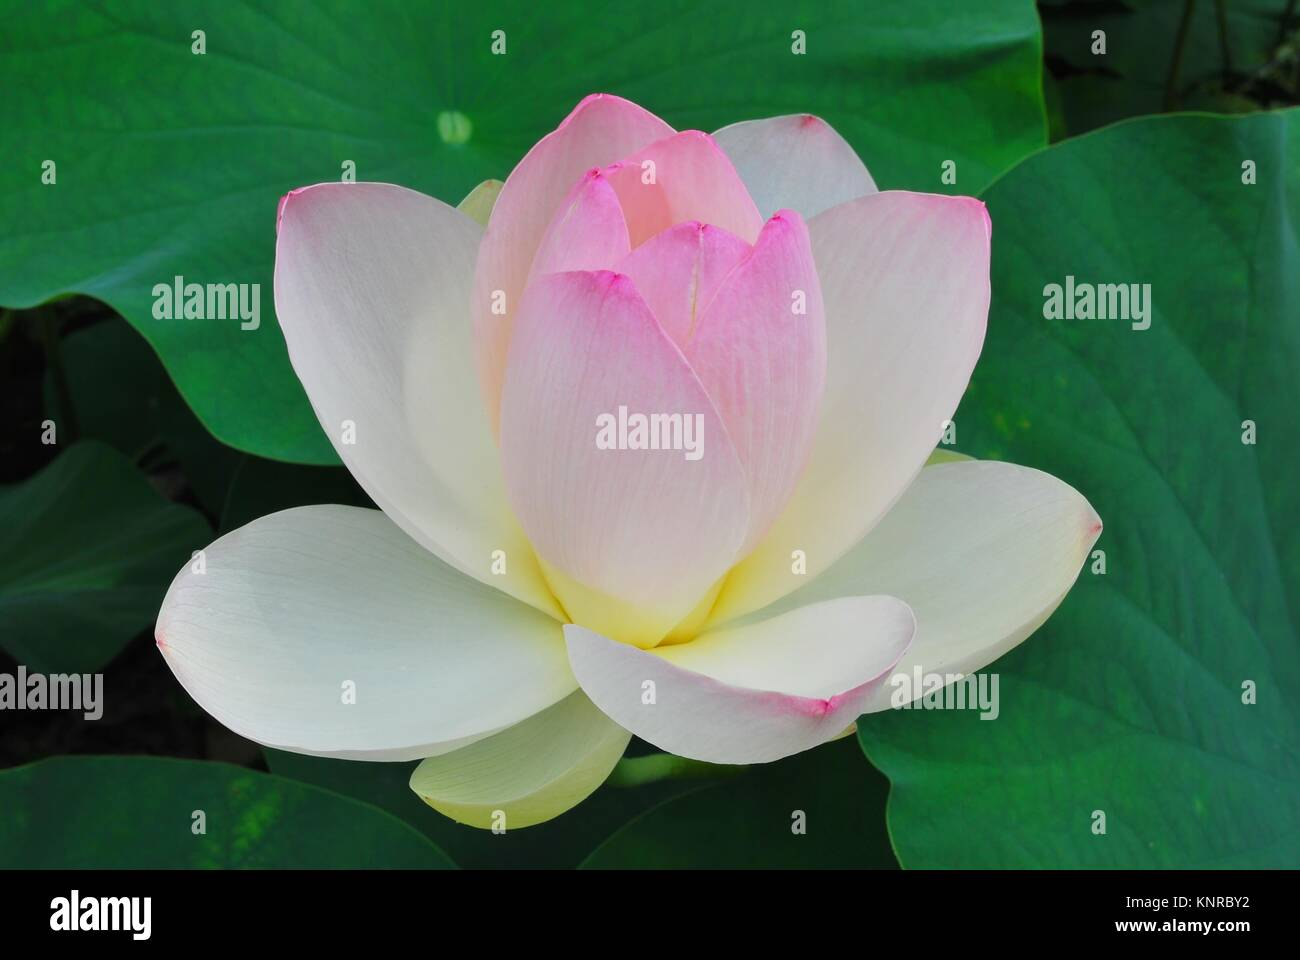 Lotus flower in full bloom symbolizing religion buddhism purity lotus flower in full bloom symbolizing religion buddhism purity serenity zen the summer season buddha enlightenment bliss joy and other abst mightylinksfo